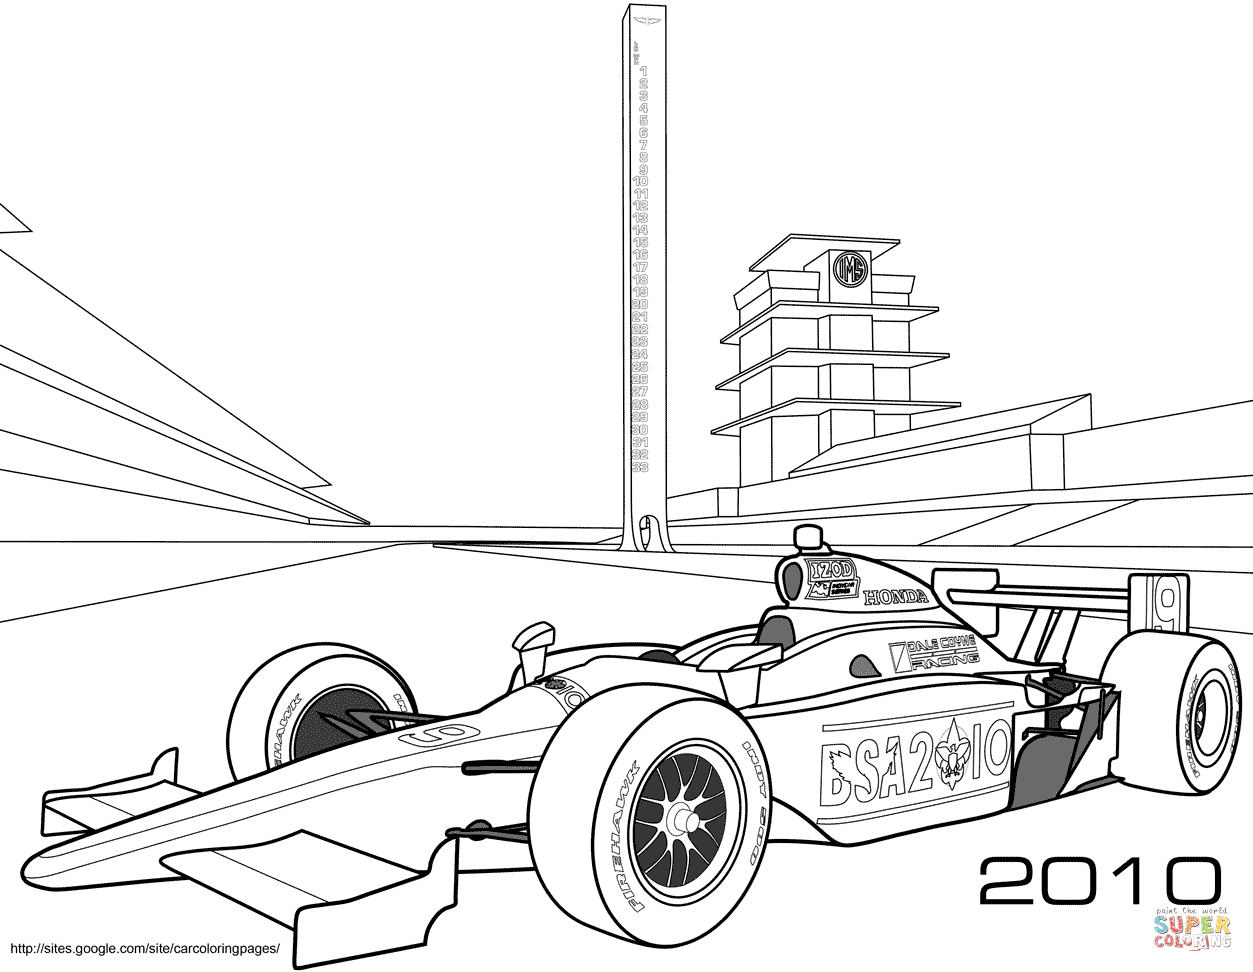 Printable Coloring Pages Cars Indy Race Car Coloring Page Free Printable Coloring Pages